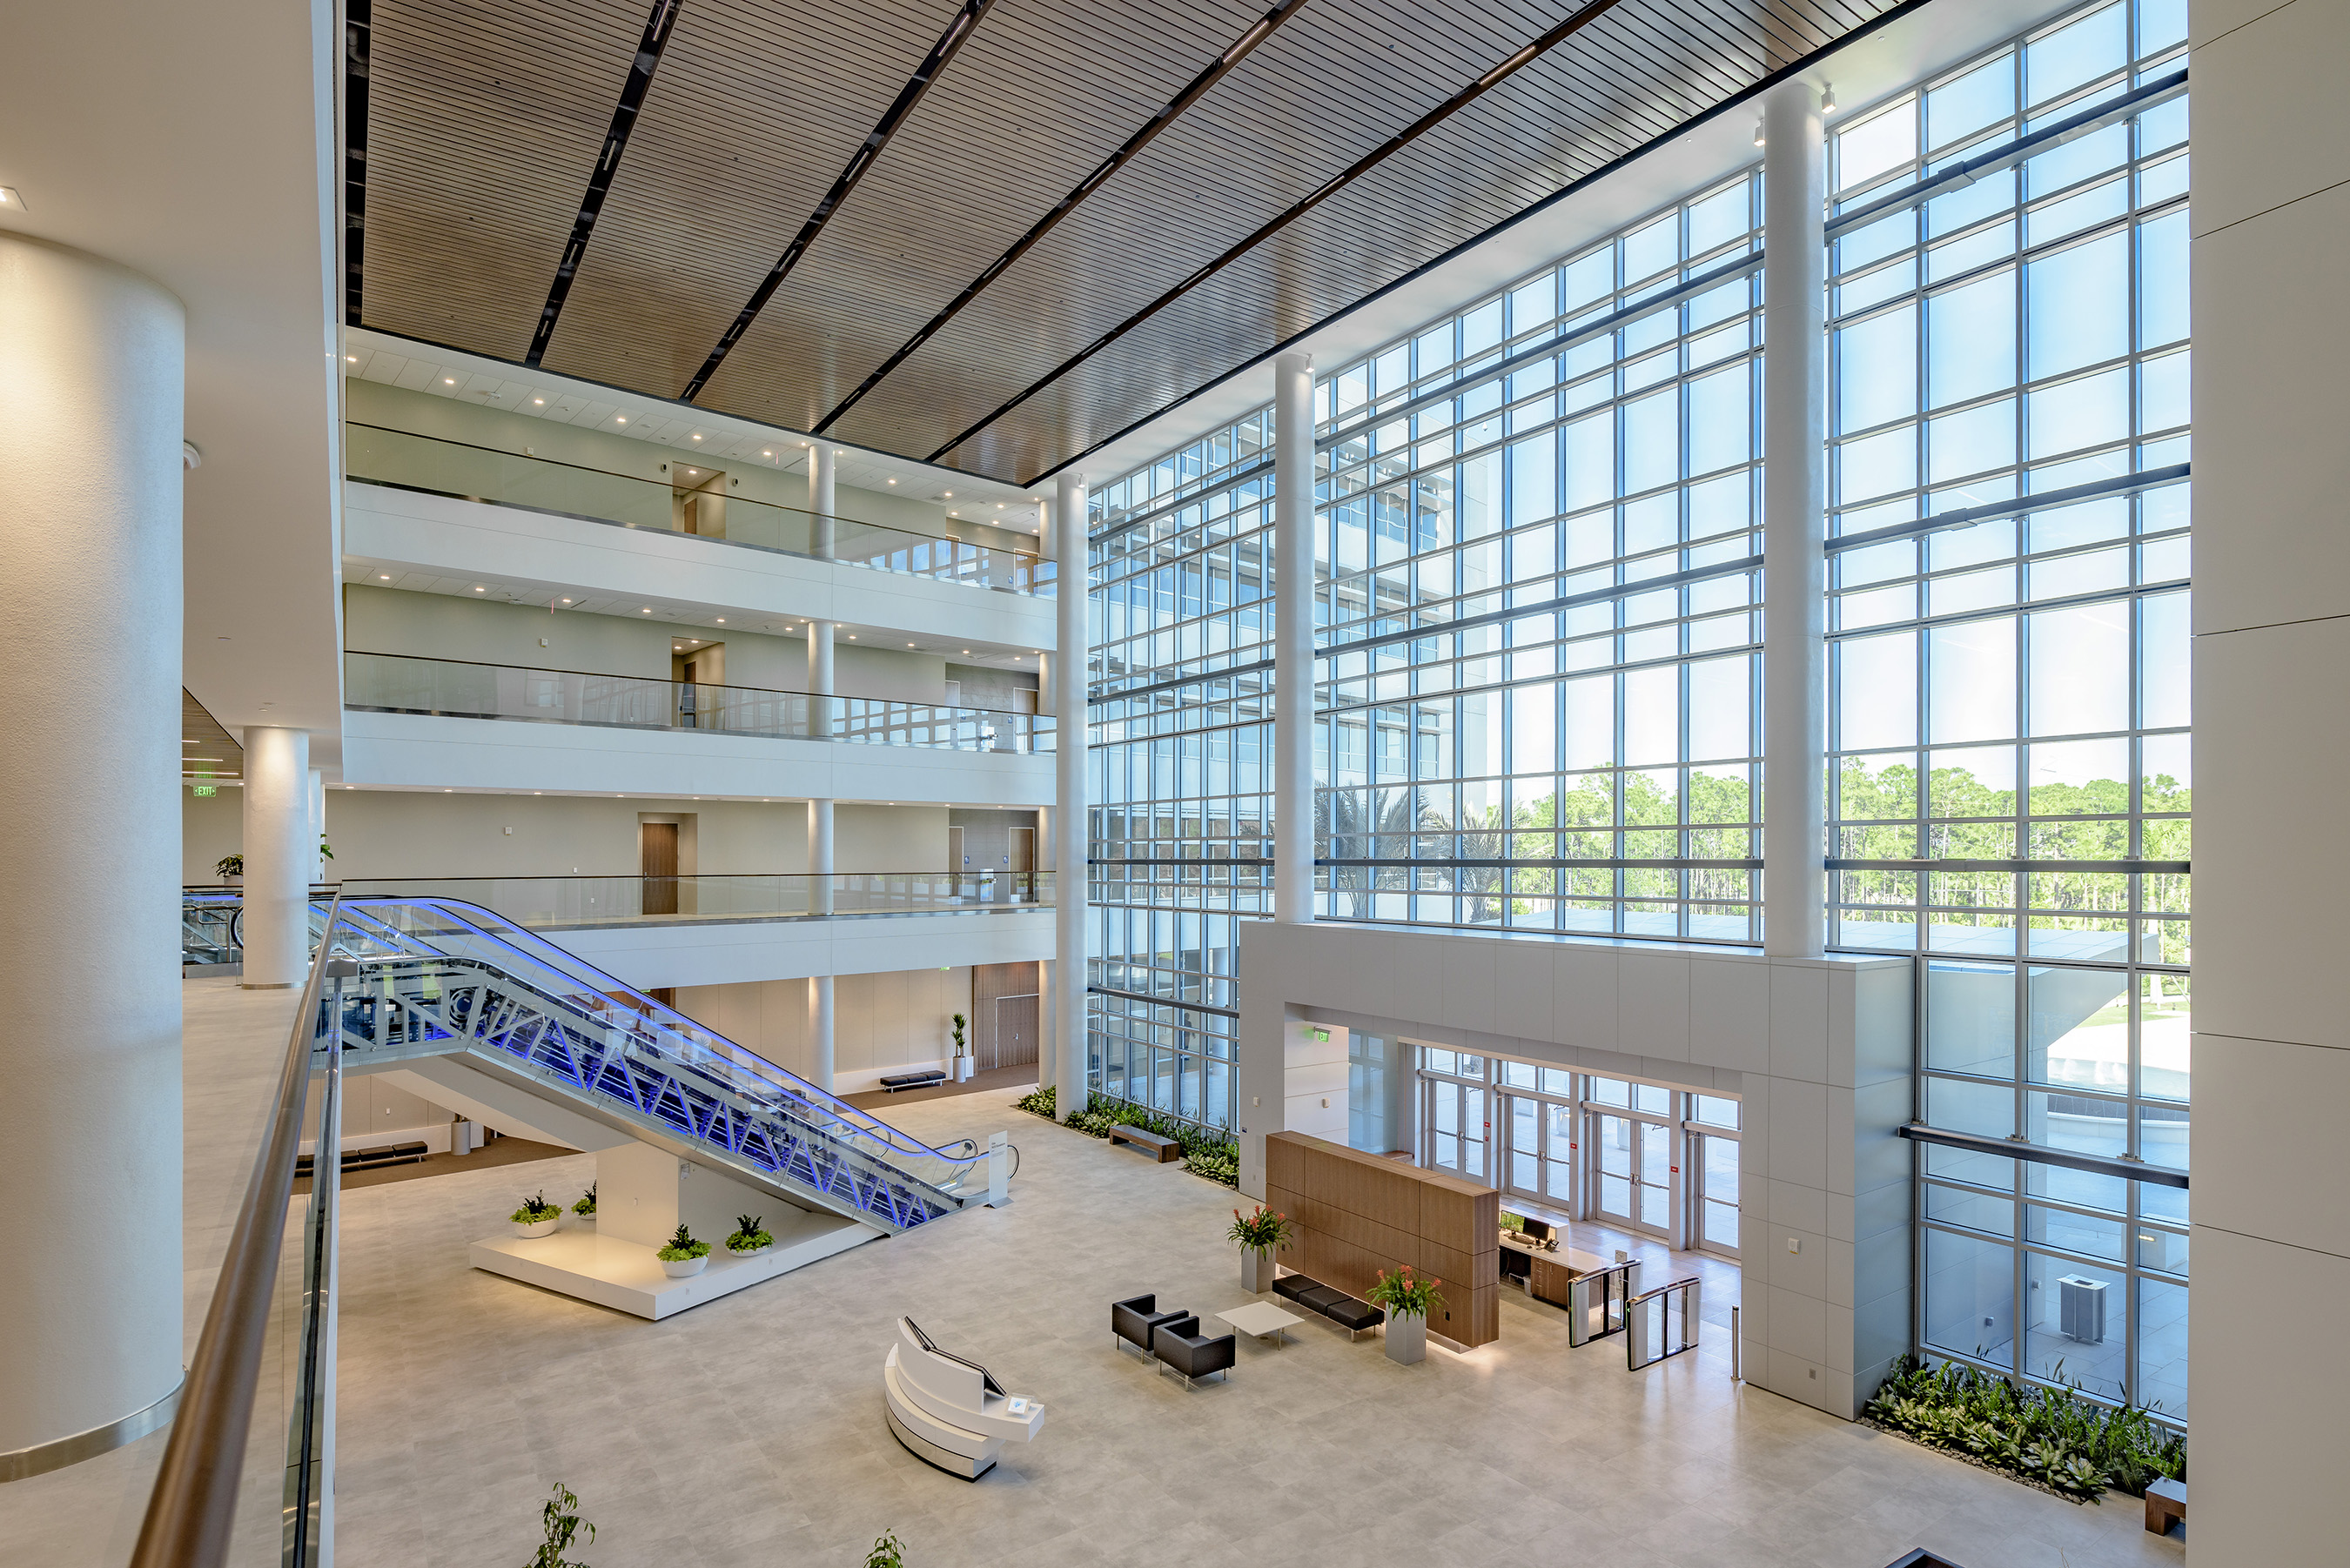 The UTC Center for Intelligent Buildings is designed to be one of the most sustainable and efficient buildings in the world.